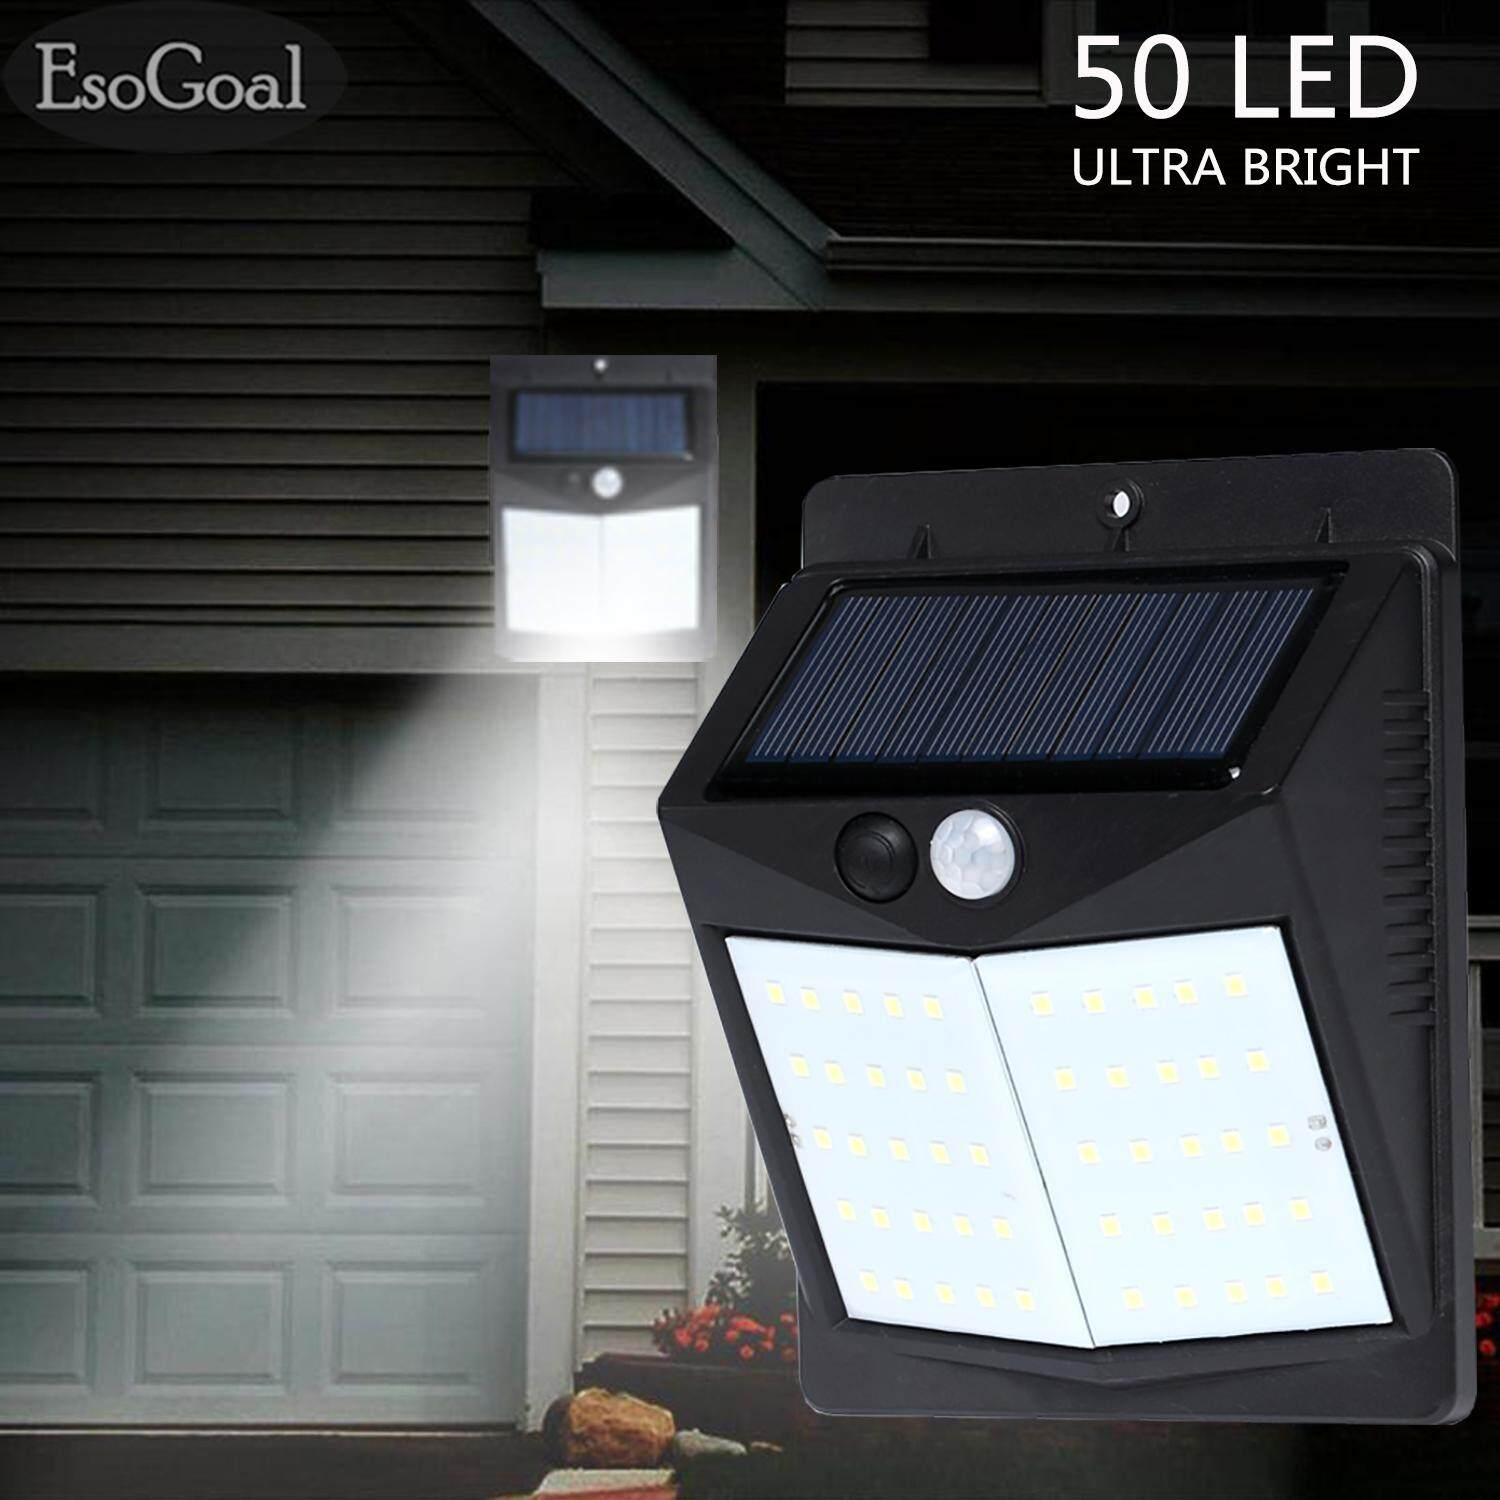 Outdoor Lighting For Sale Lights Prices Brands Review Photoelectric Sensor Esogoal Led Solar Wall Light Waterproof Motion Wireless Powered Lamp